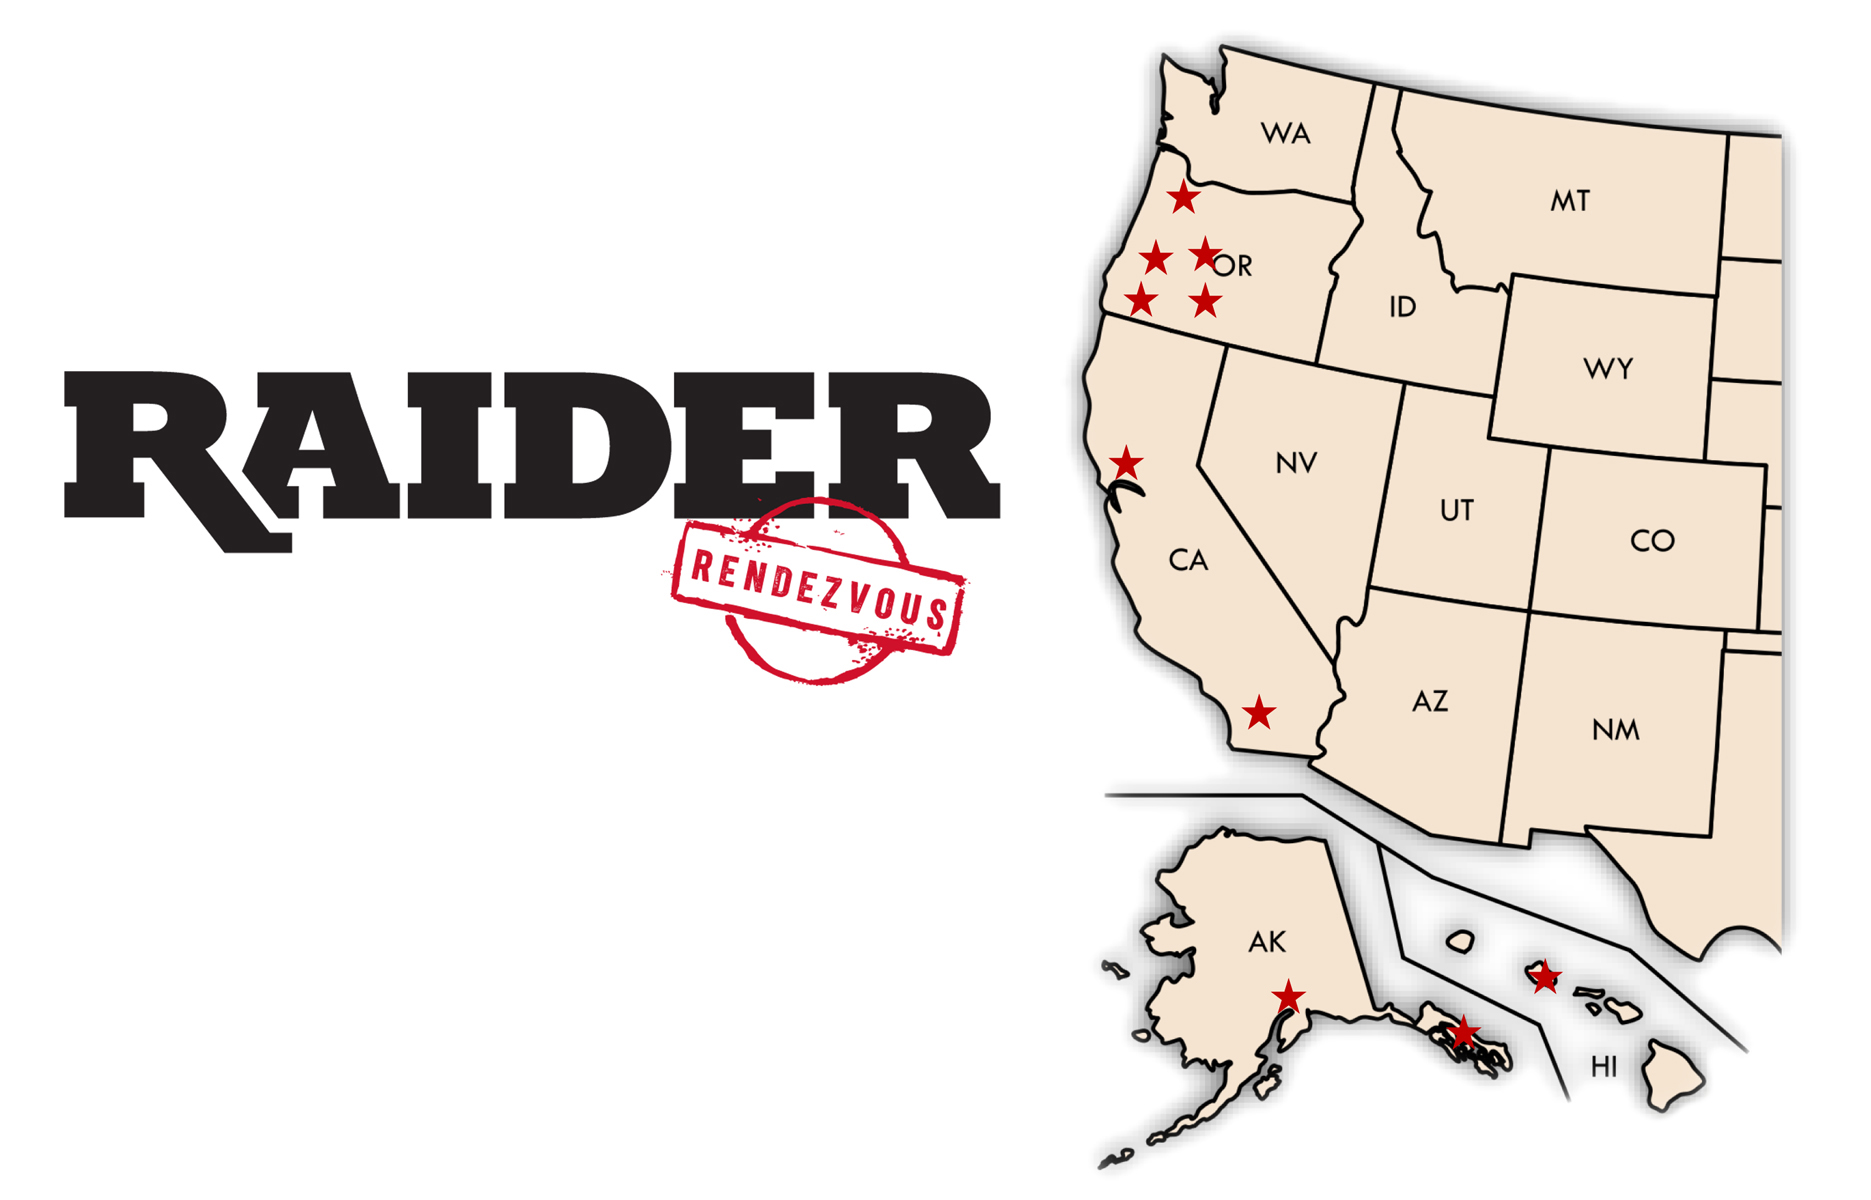 Raider Rendezvous Klamath Falls - SOU Alumni on corvallis or map, milton freewater or map, culver or map, lake county or map, douglas county or map, waldport or map, medford or map, mitchell or map, eugene or map, lane county or map, brookings or map, bend or map, roseburg or map, tidewater or map, huntington or map, hermiston or map, hood river or map, lakeview or map, boring or map, prineville or map,